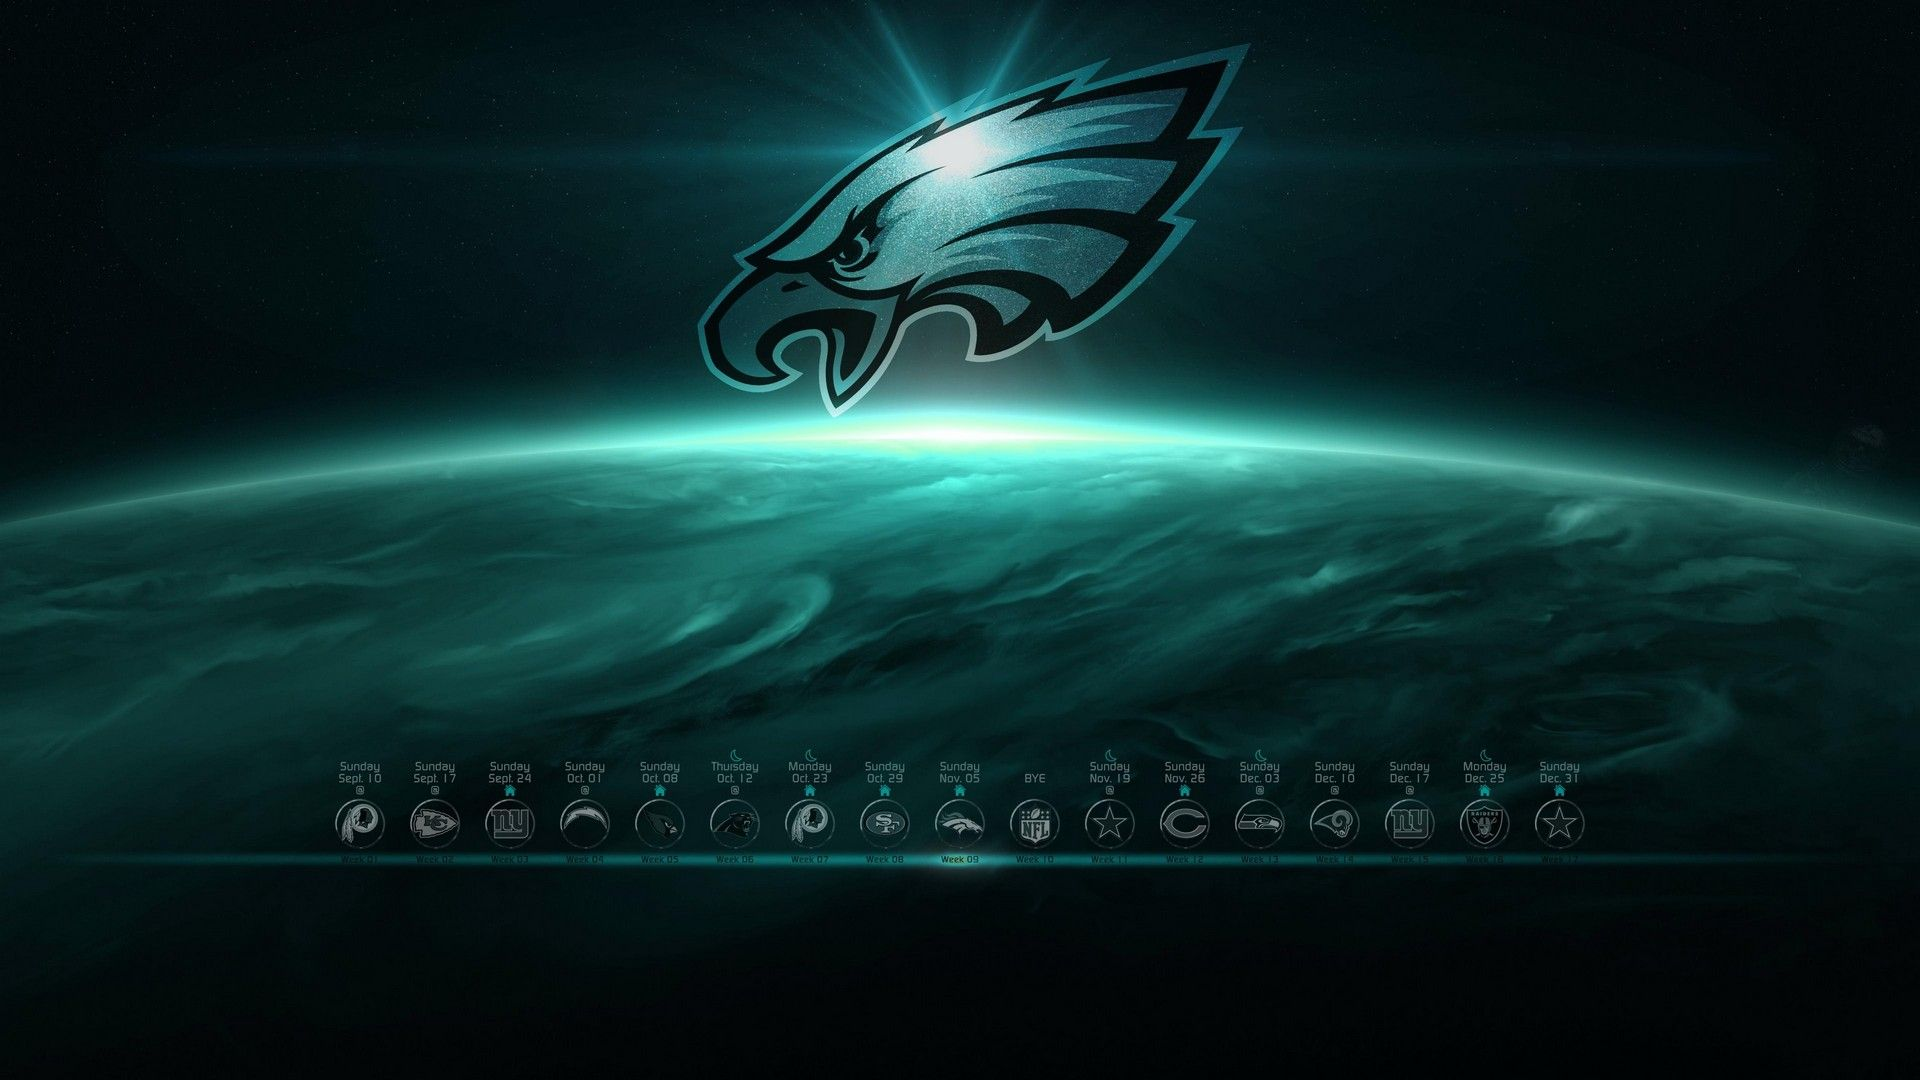 NFL Eagles Wallpaper For Mac Backgrounds Philadelphia